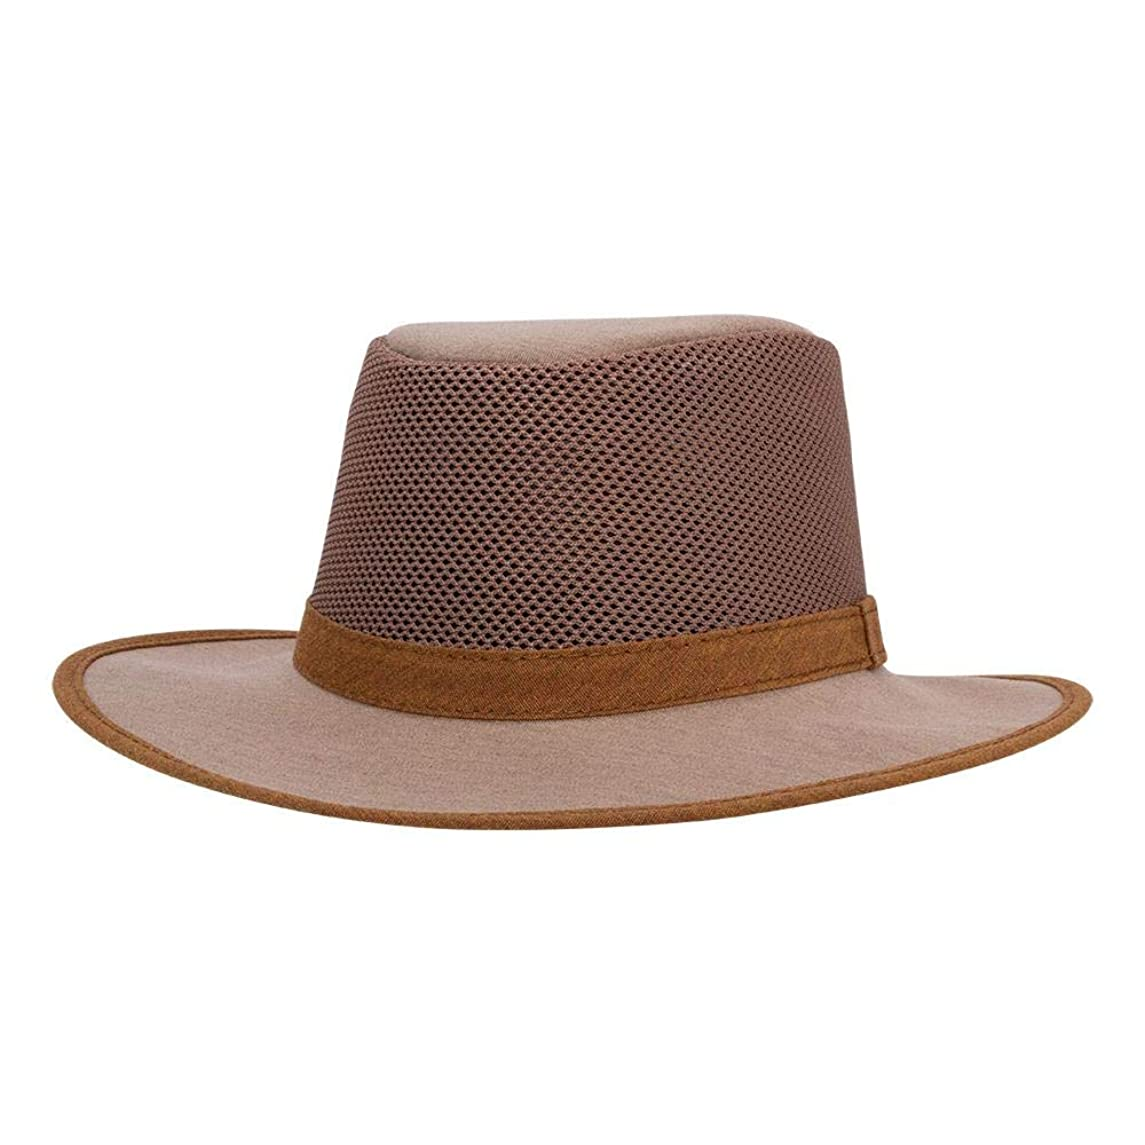 SOLAIR HATS Roamer by American Hat Makers Mesh Sun Hat